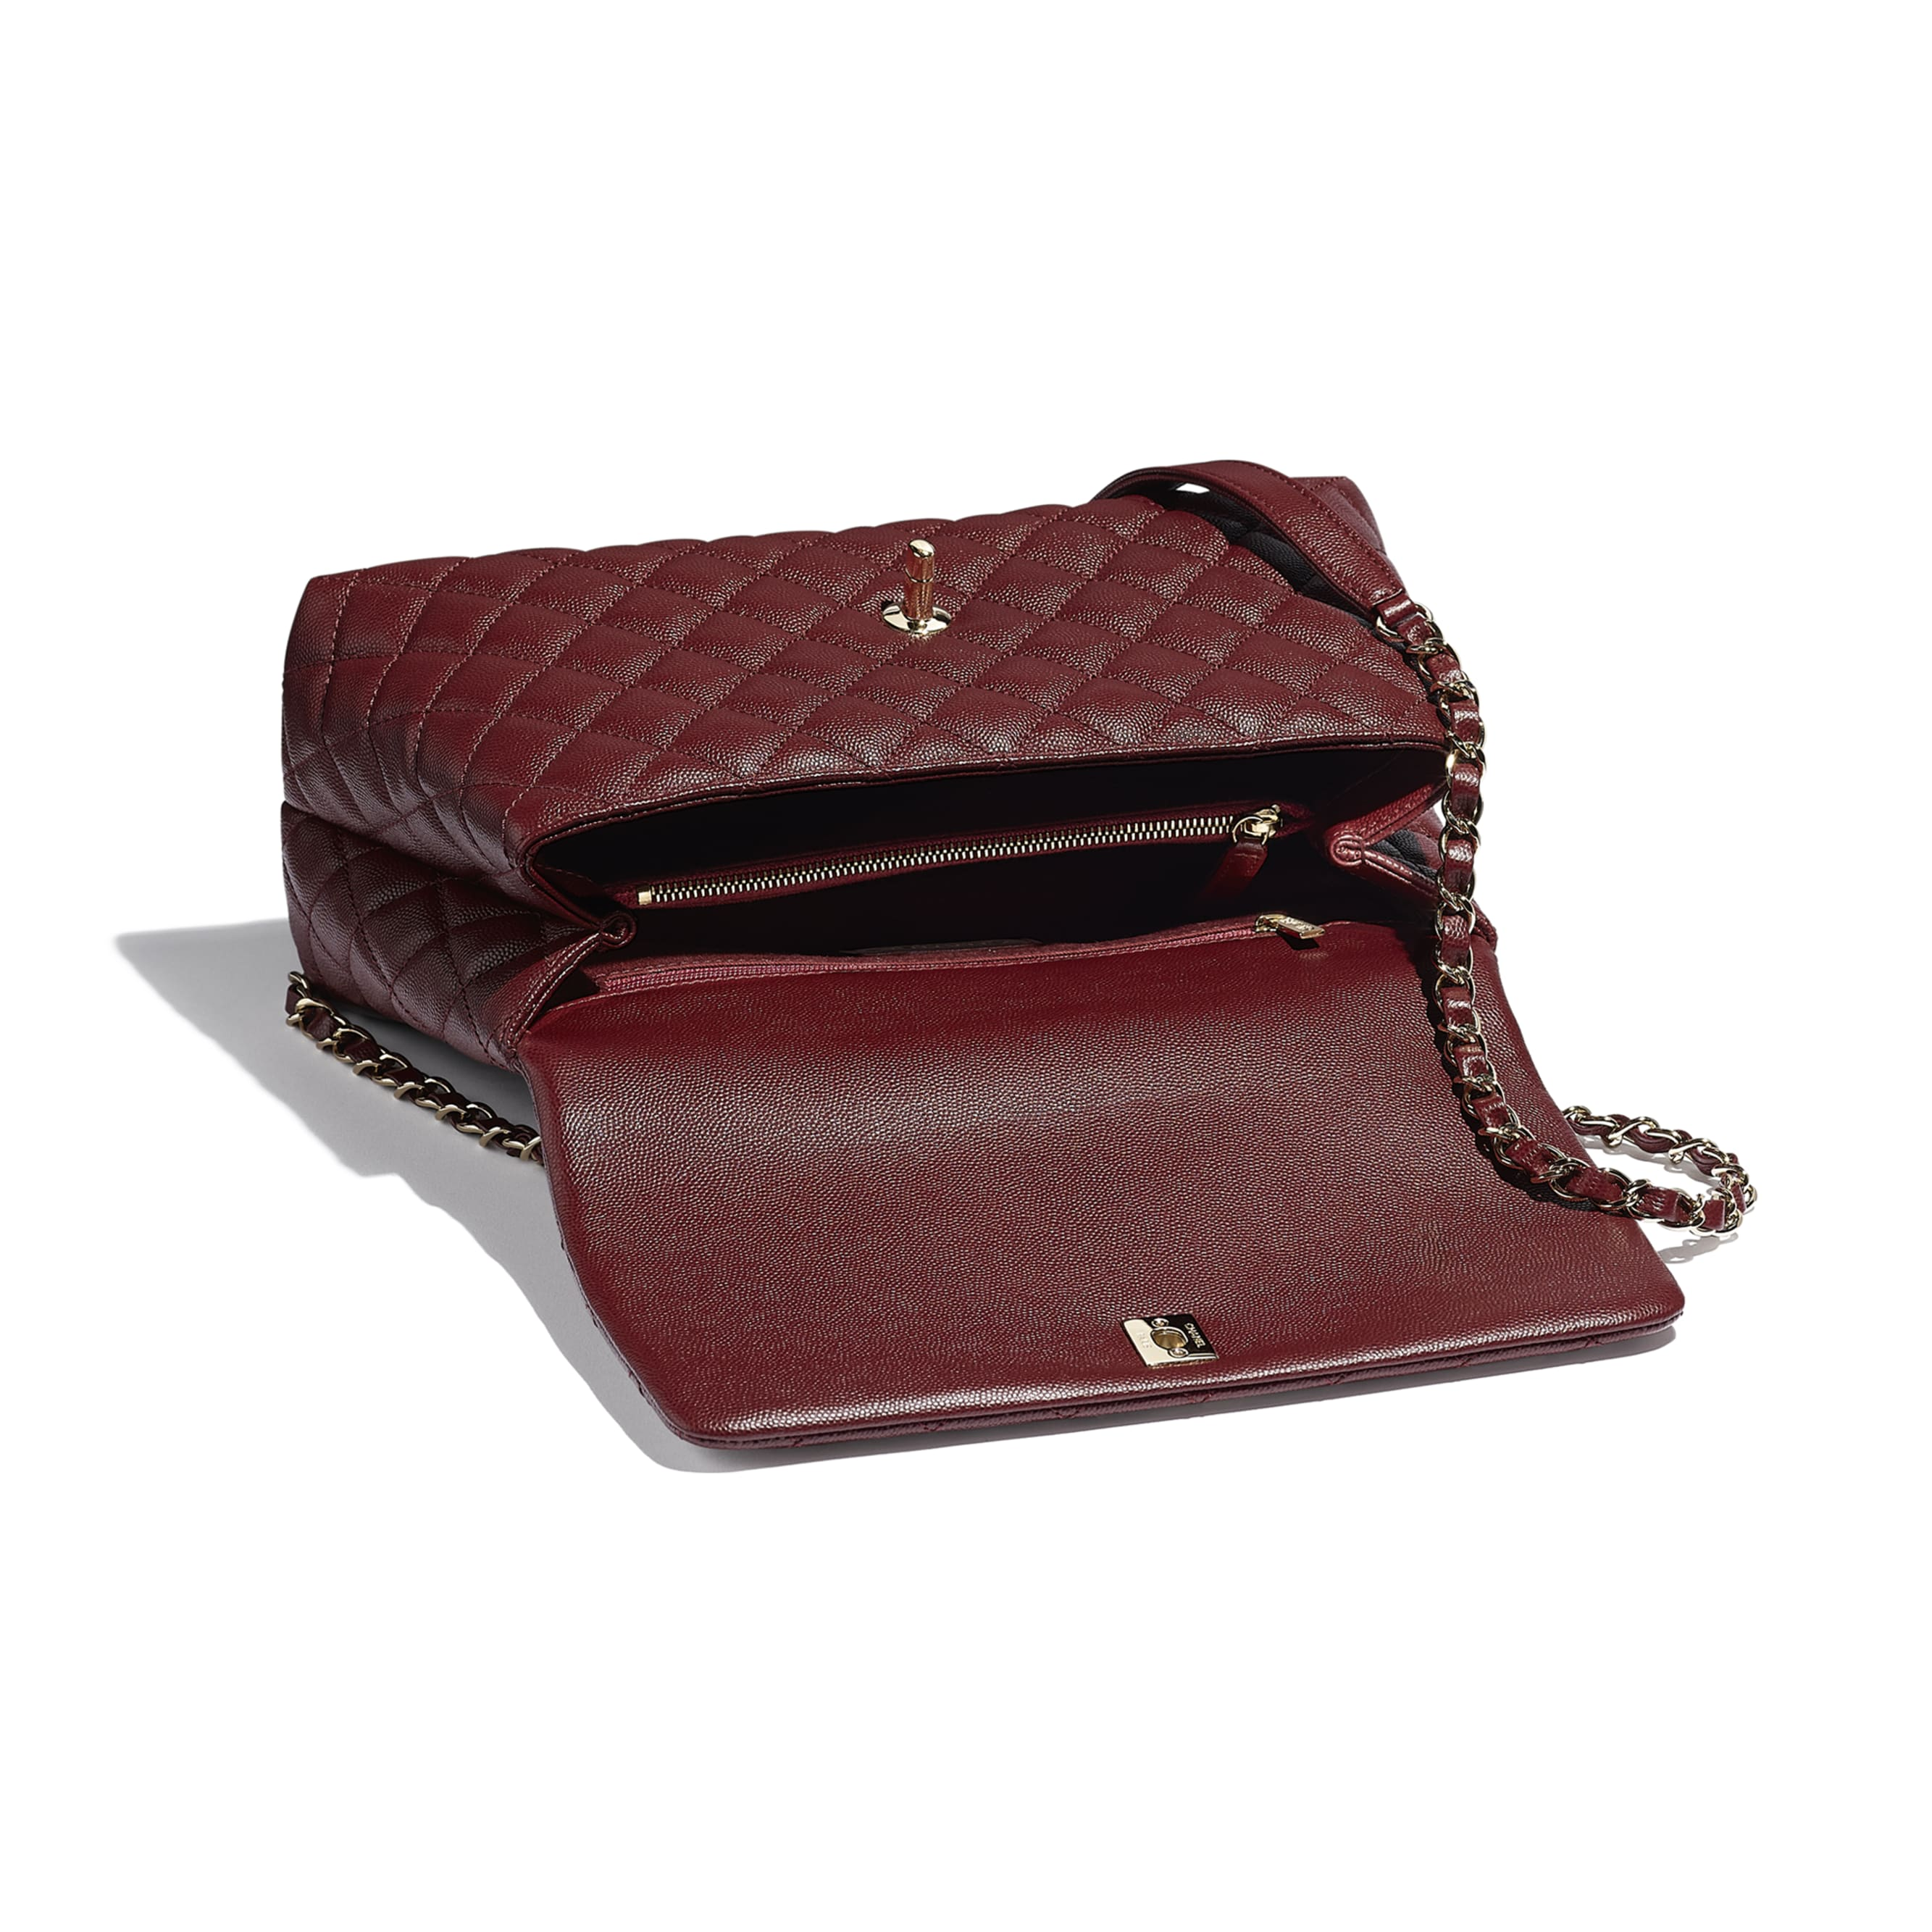 Large Flap Bag With Top Handle - Burgundy - Grained Calfskin & Gold-Tone Metal - CHANEL - Other view - see standard sized version